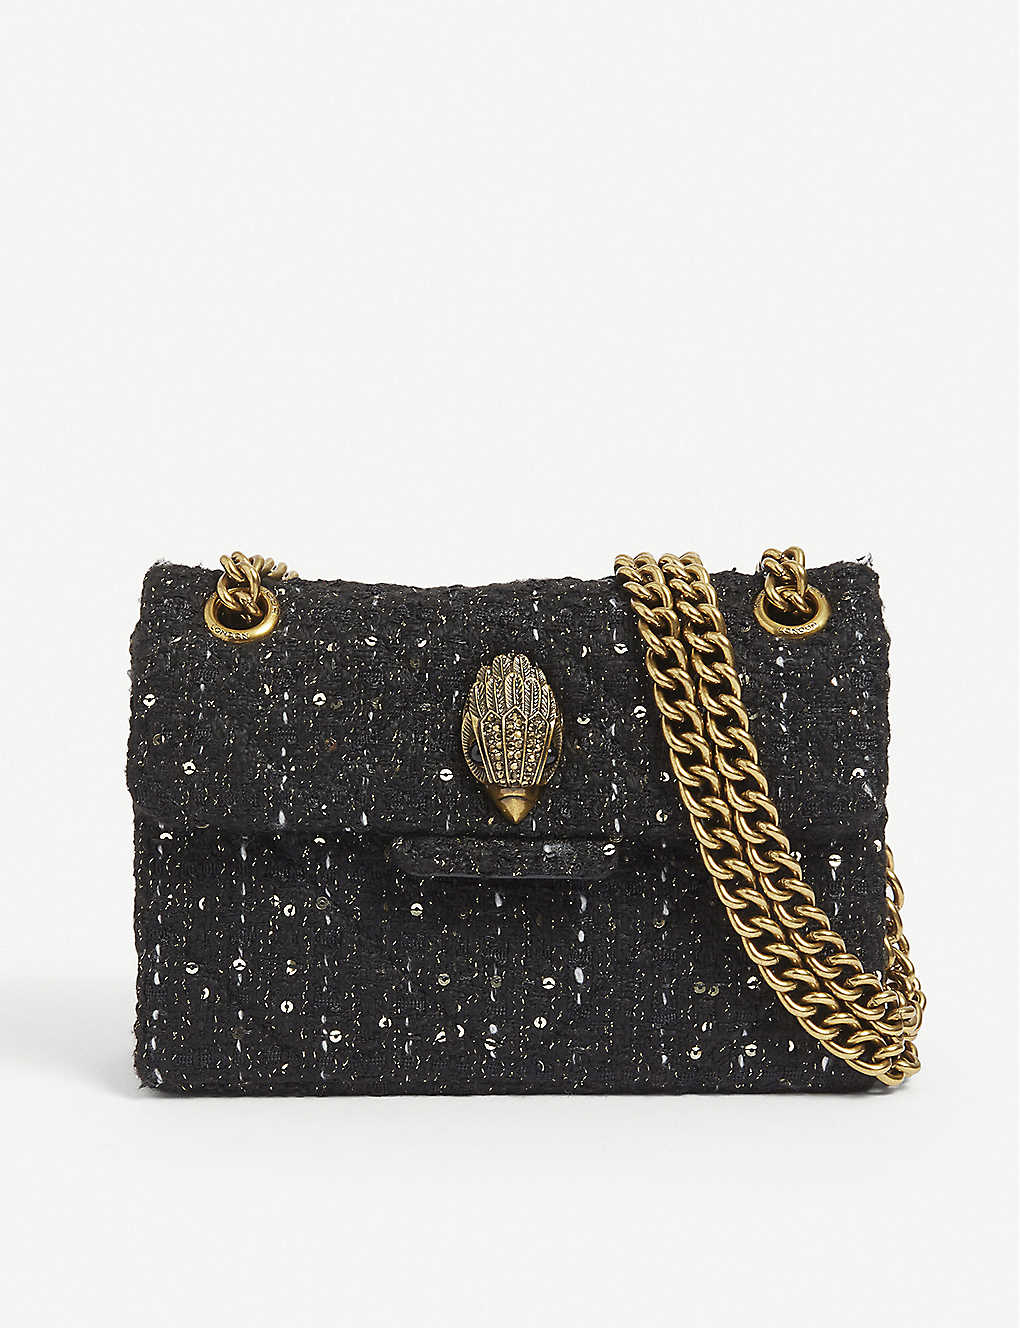 KURT GEIGER LONDON: Kensington mini tweed shoulder bag